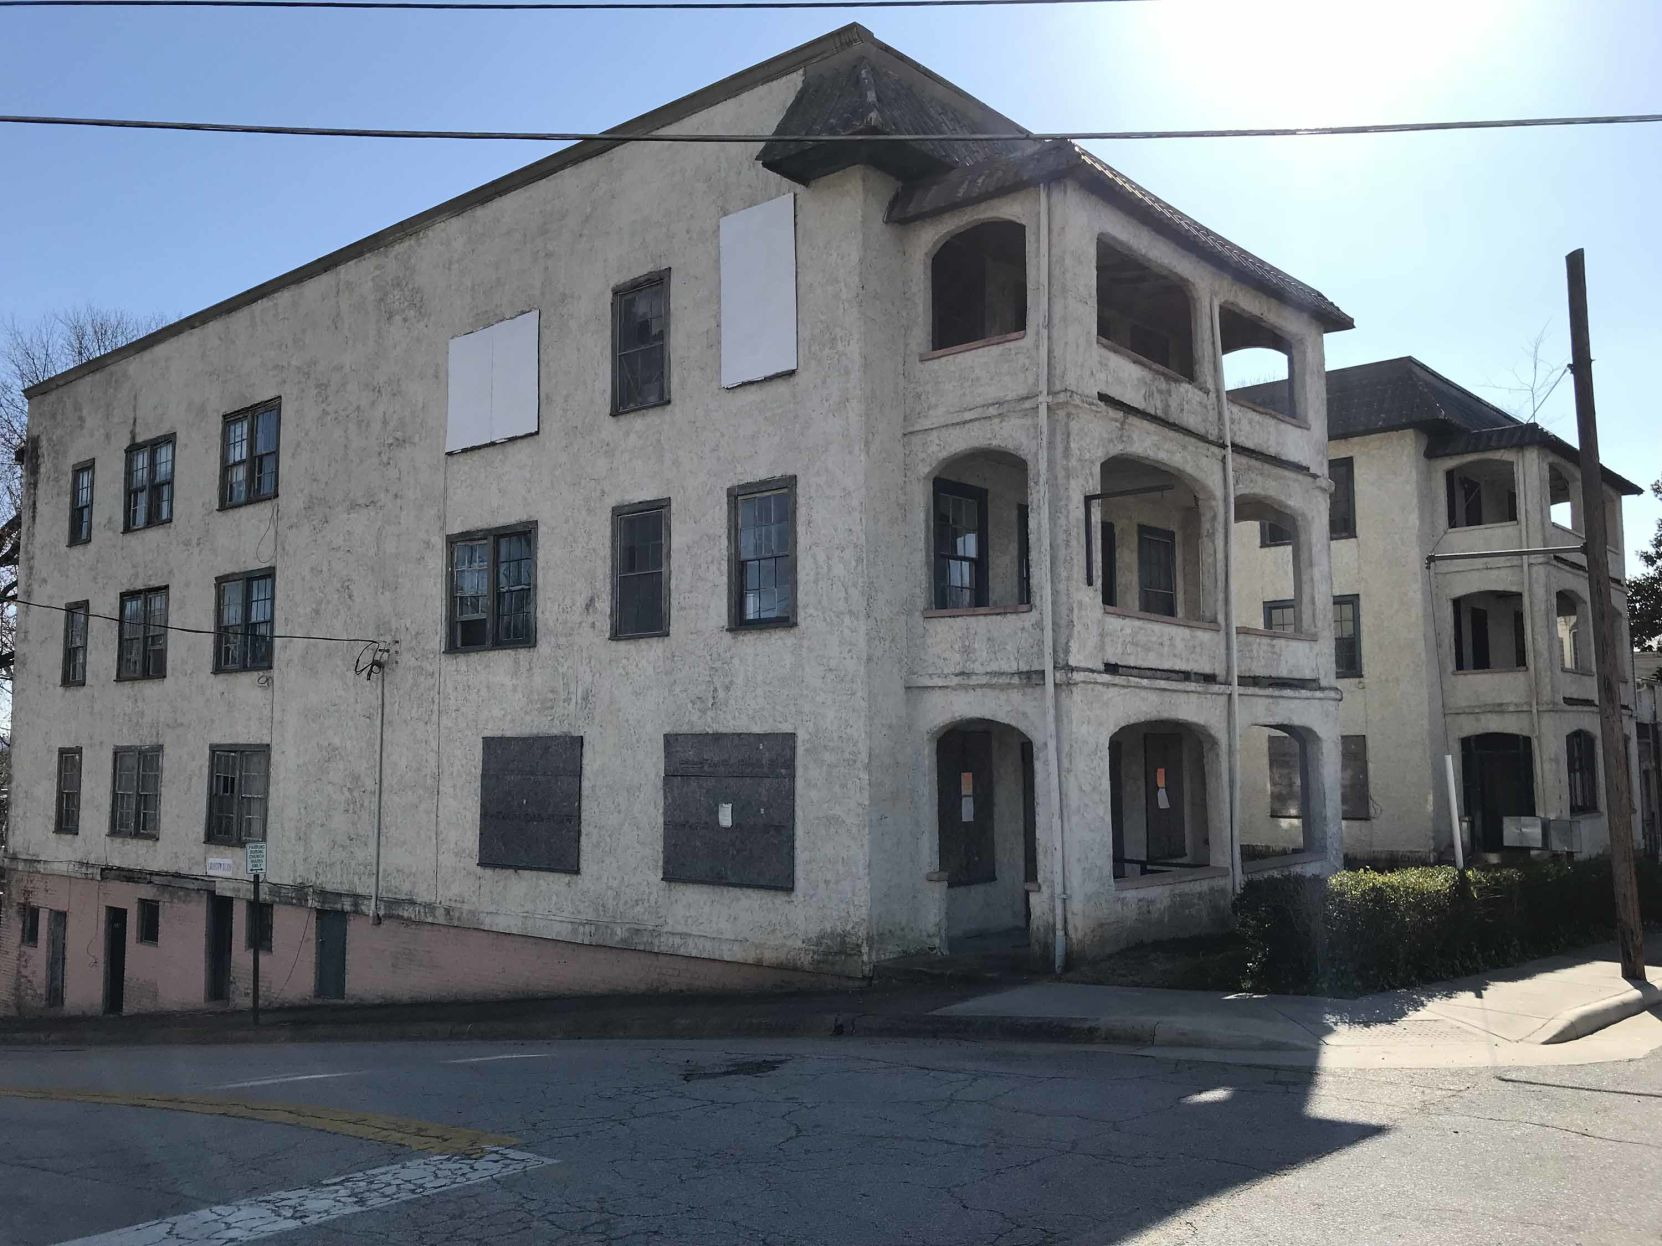 Superbe Danville Weighs Buying Blighted Apartment Building